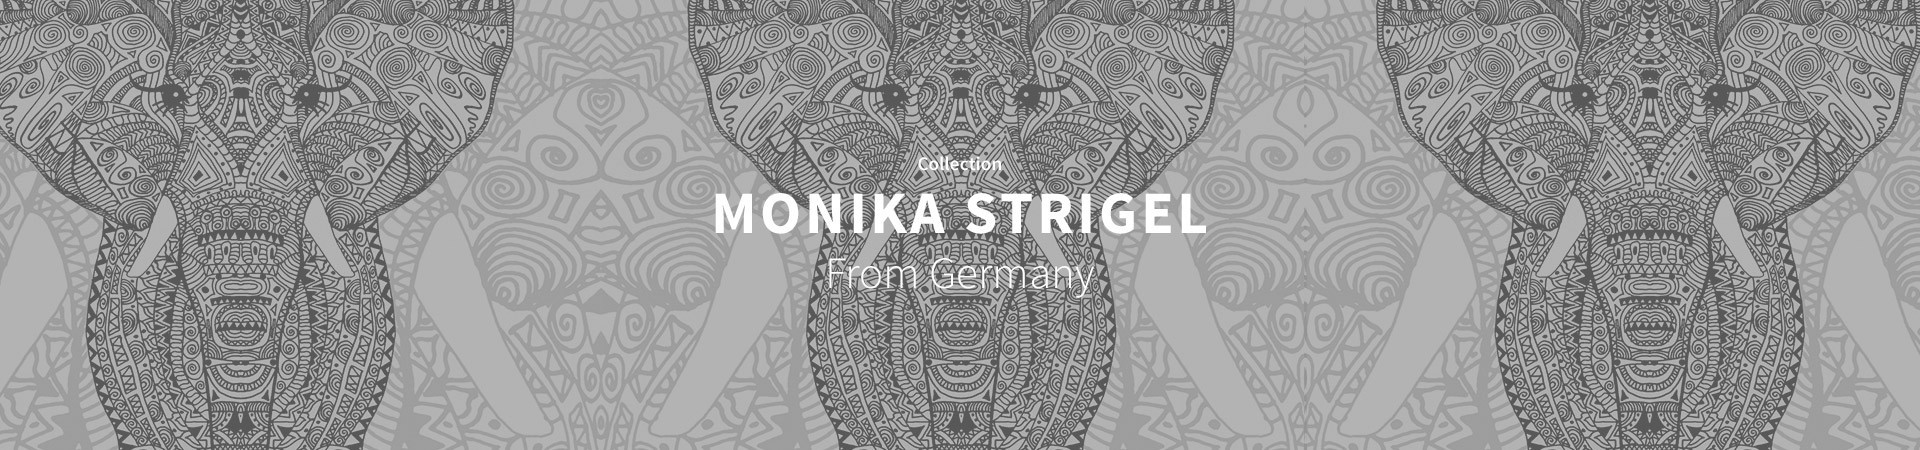 Monika Strigel